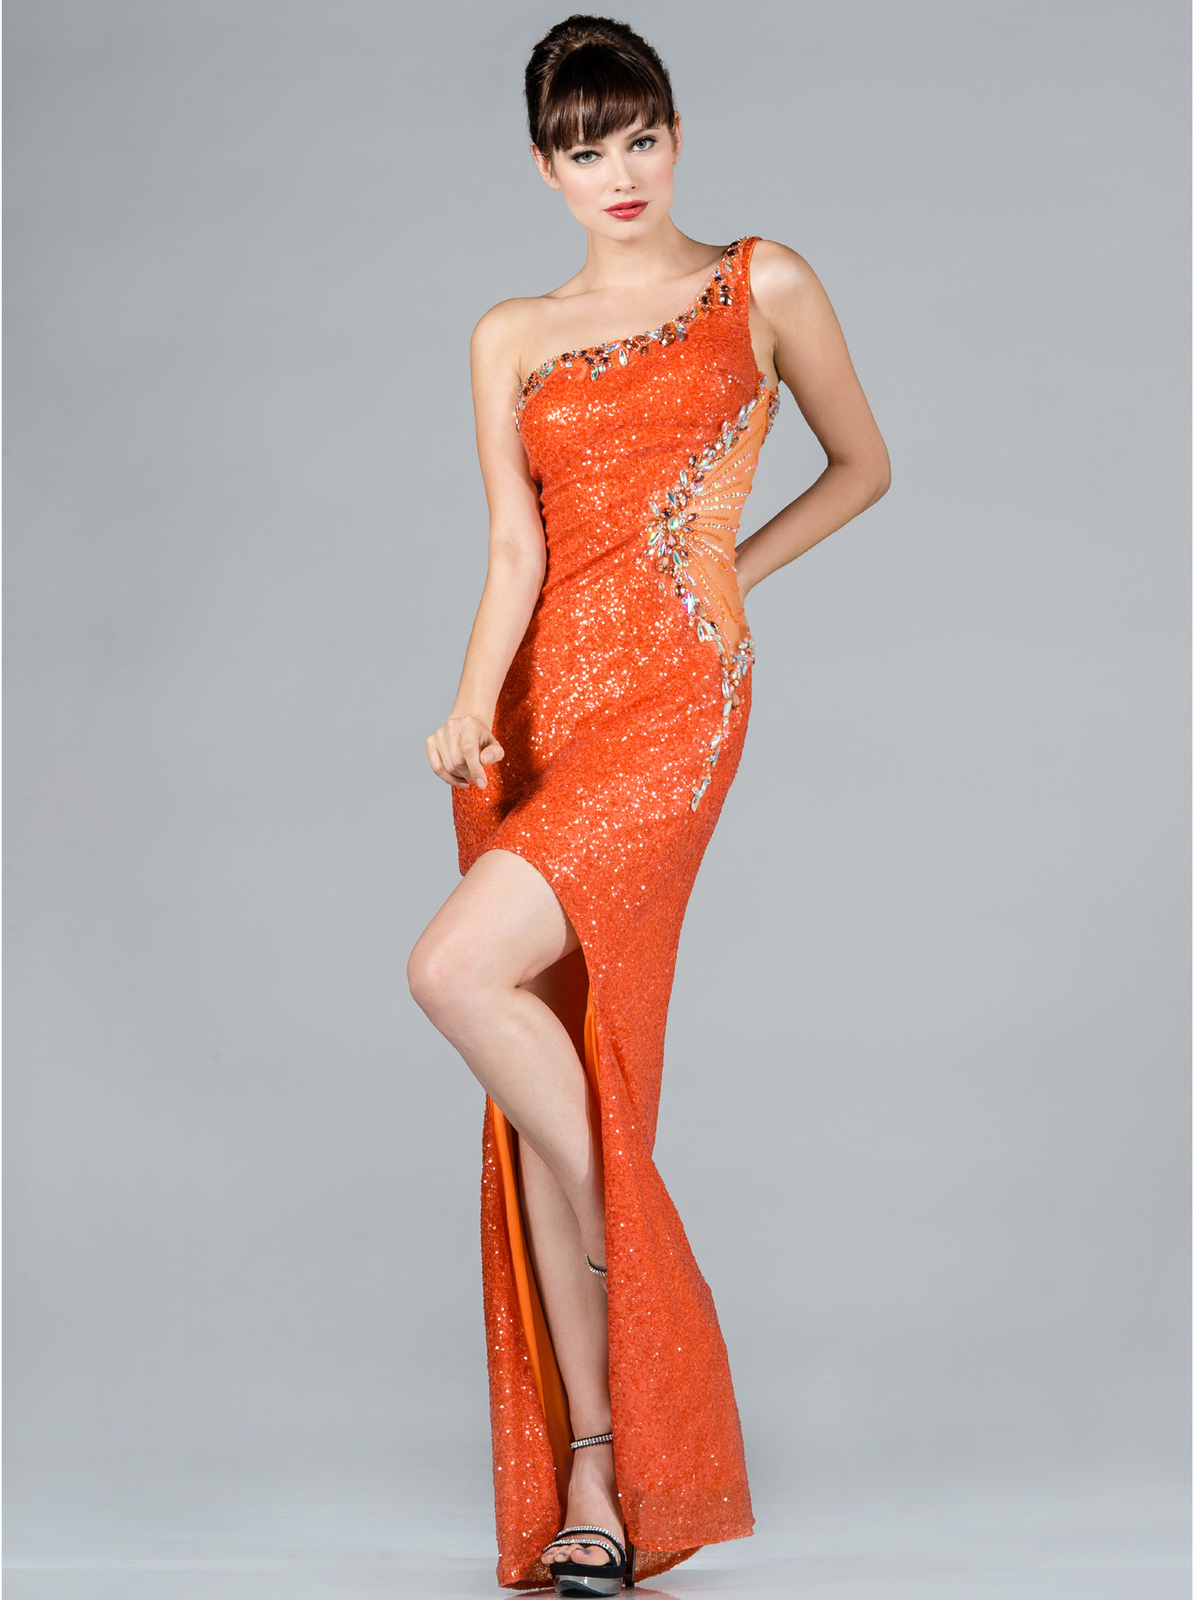 Orange One Shoulder Sequin High Low Evening Dress | Sung Boutique L.A.